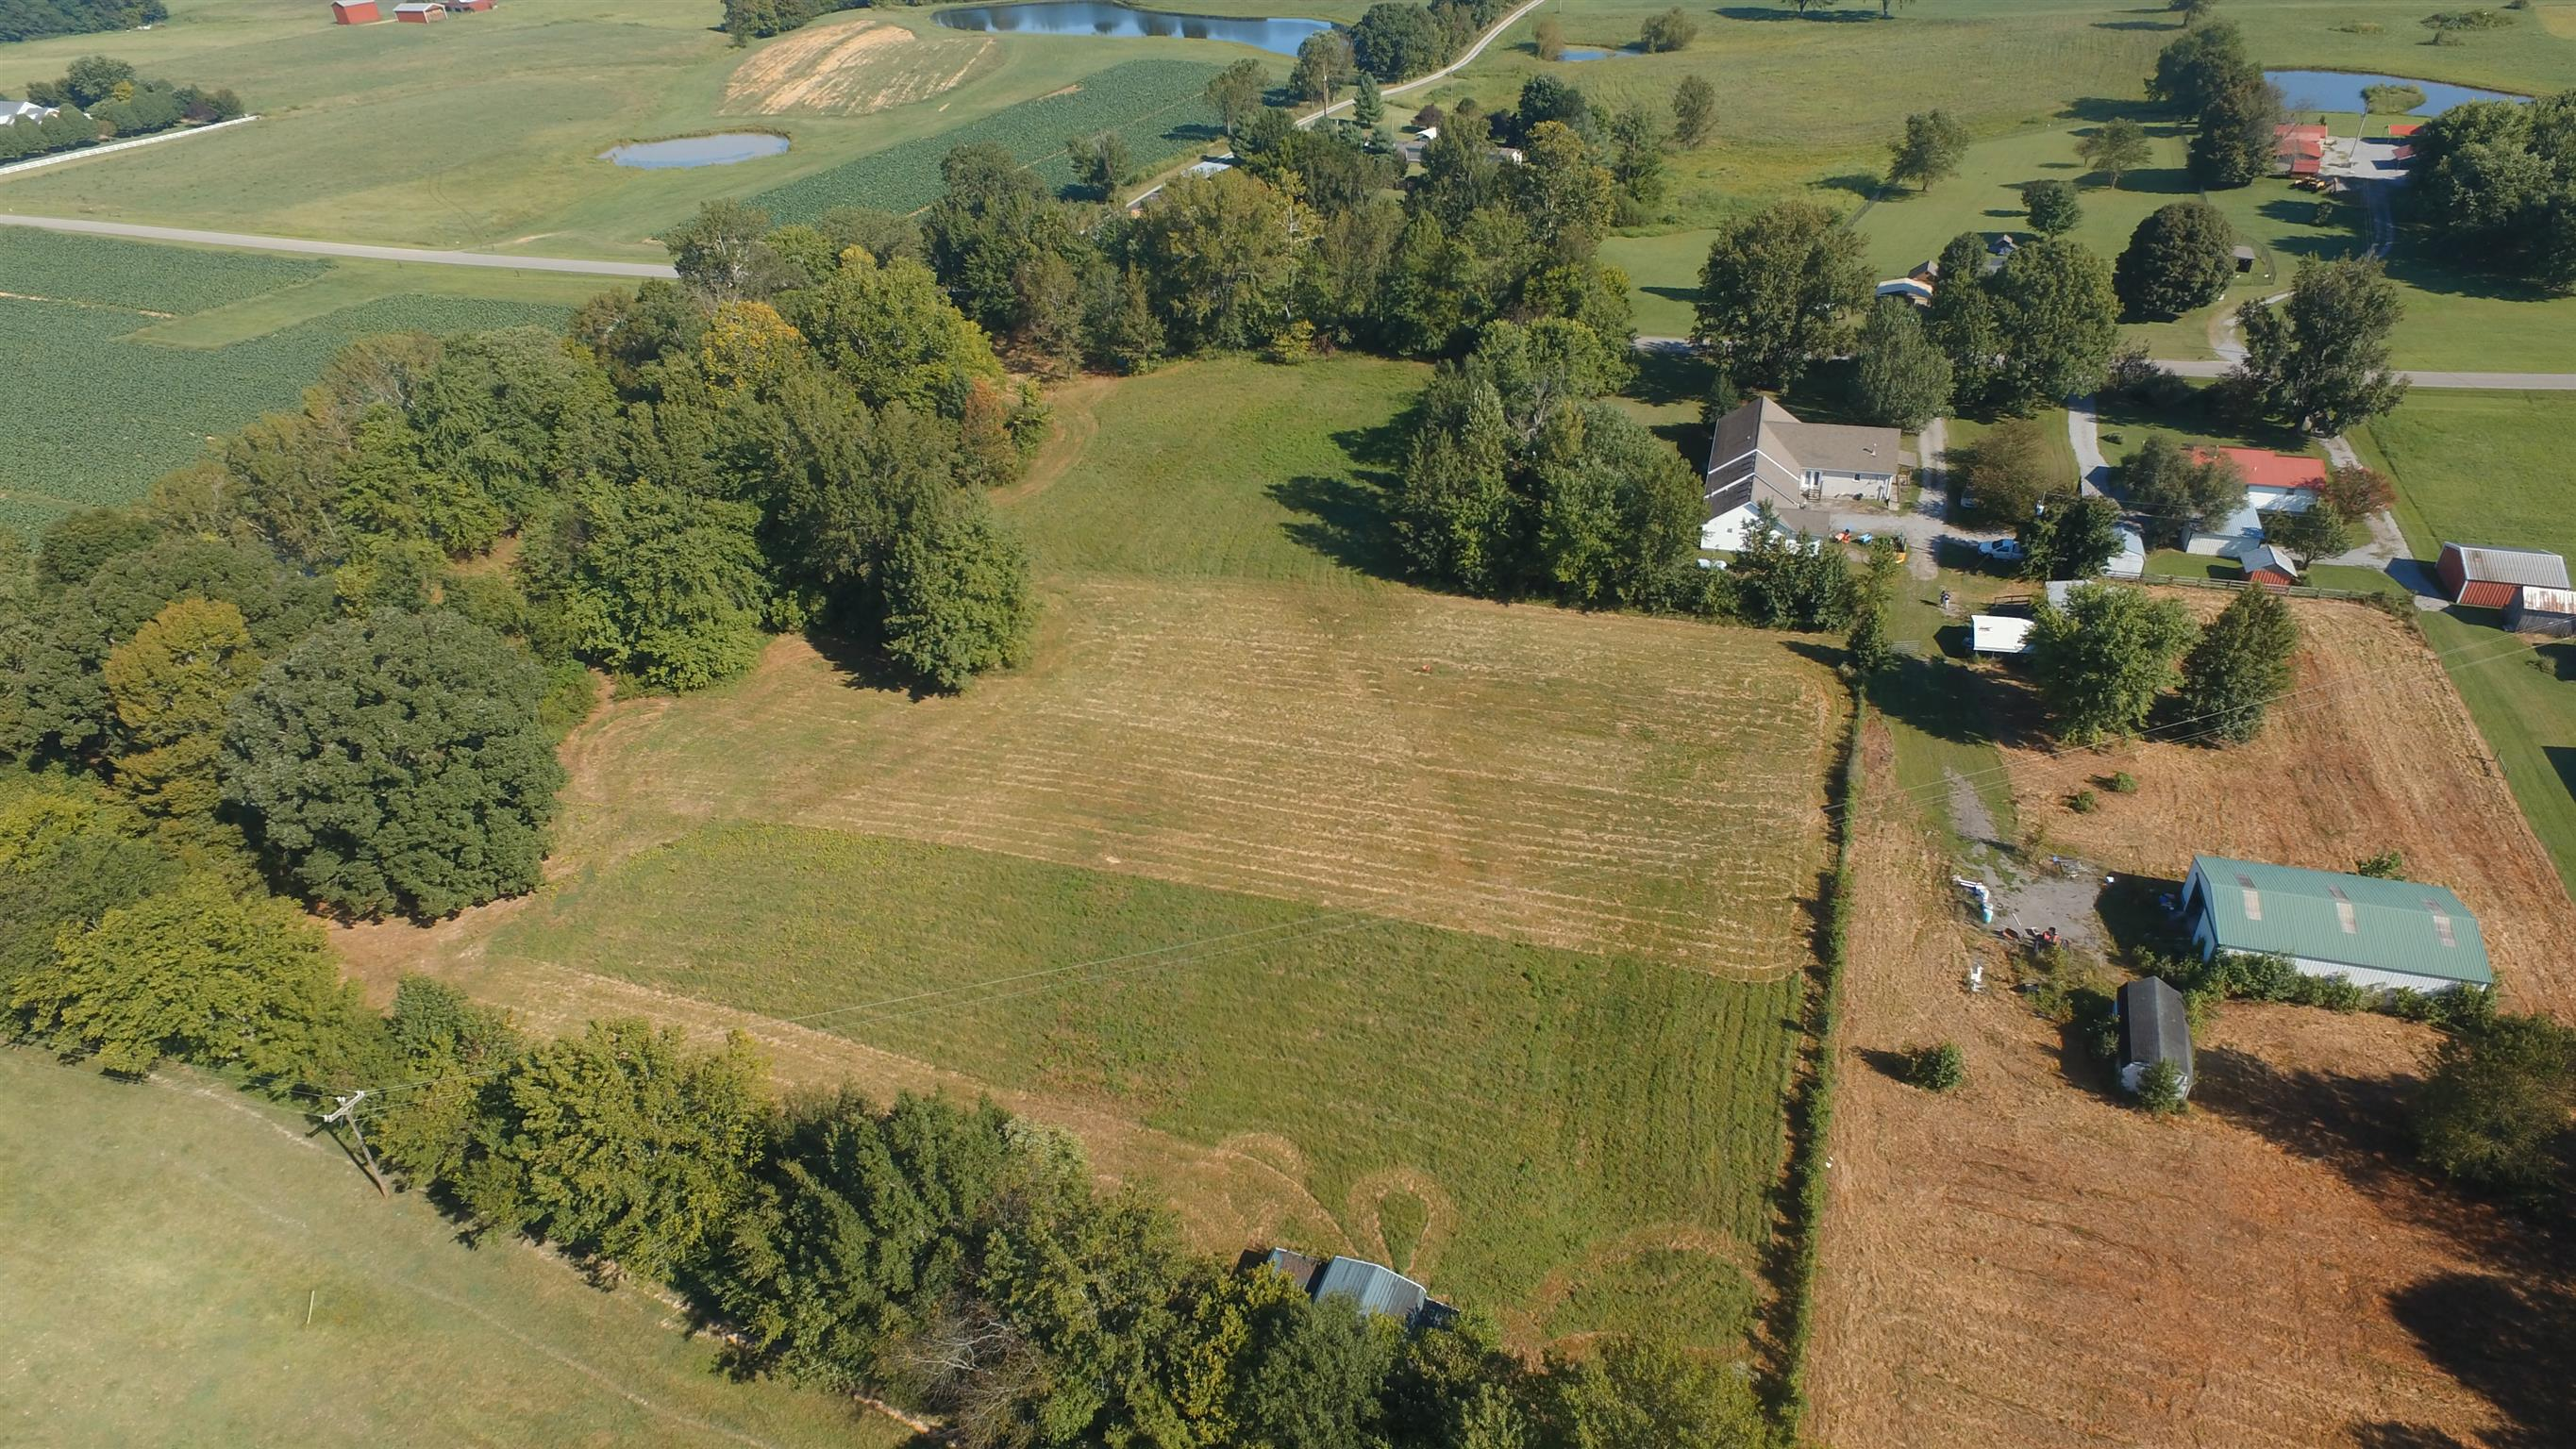 1683 Mosley Ferry Rd, Pleasant View, TN 37146 - Pleasant View, TN real estate listing